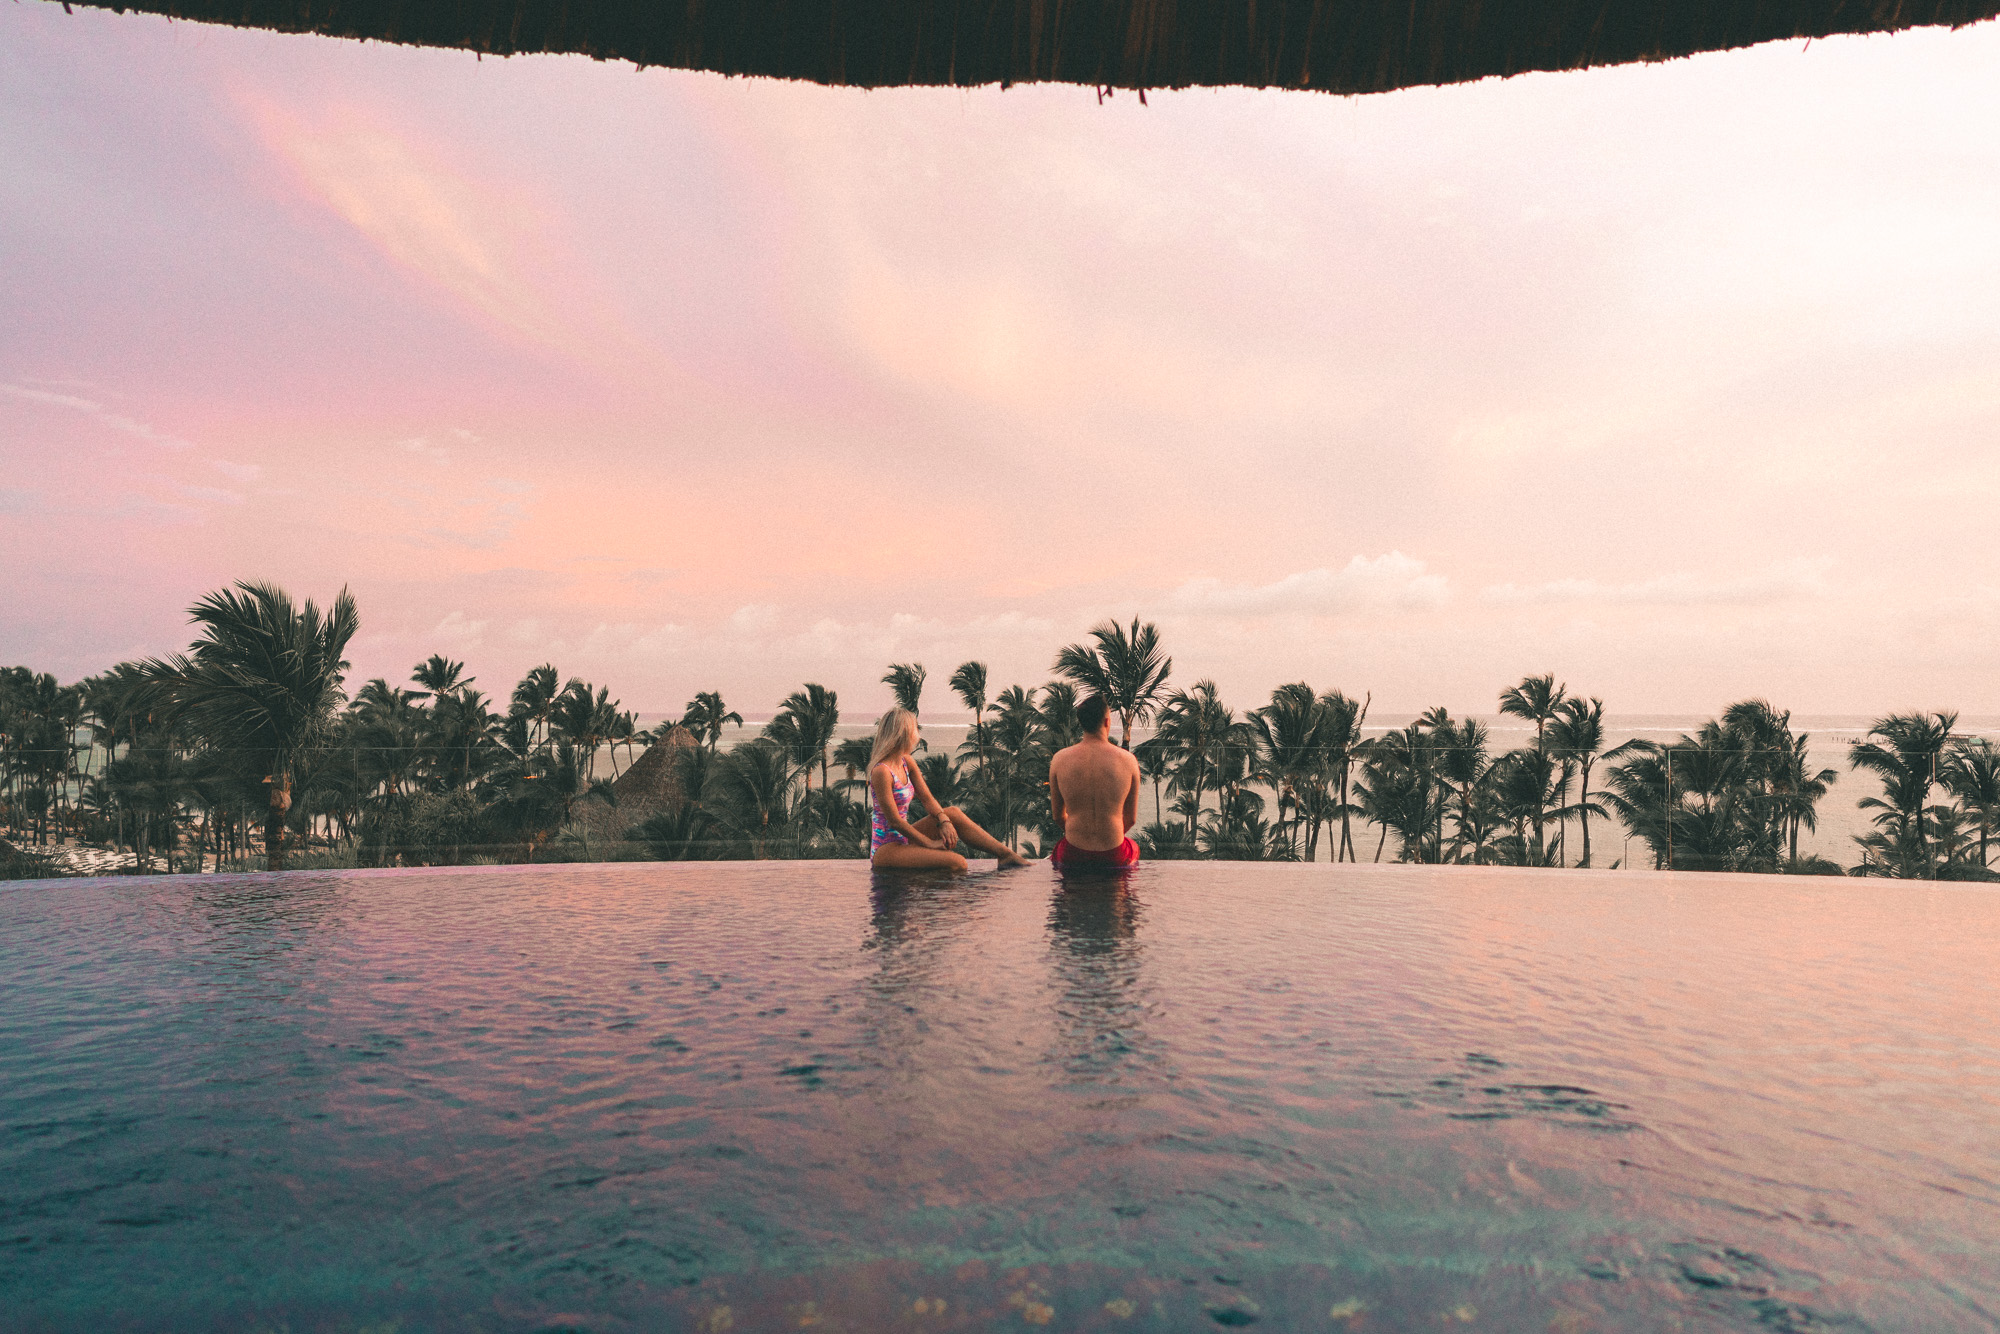 Sunset views from Barcelo Resort in the Dominican Republic | Clear Blue Water in Punta Cana | Tropical Paradise Beach Getaways in the Caribbean | Islands Near North America